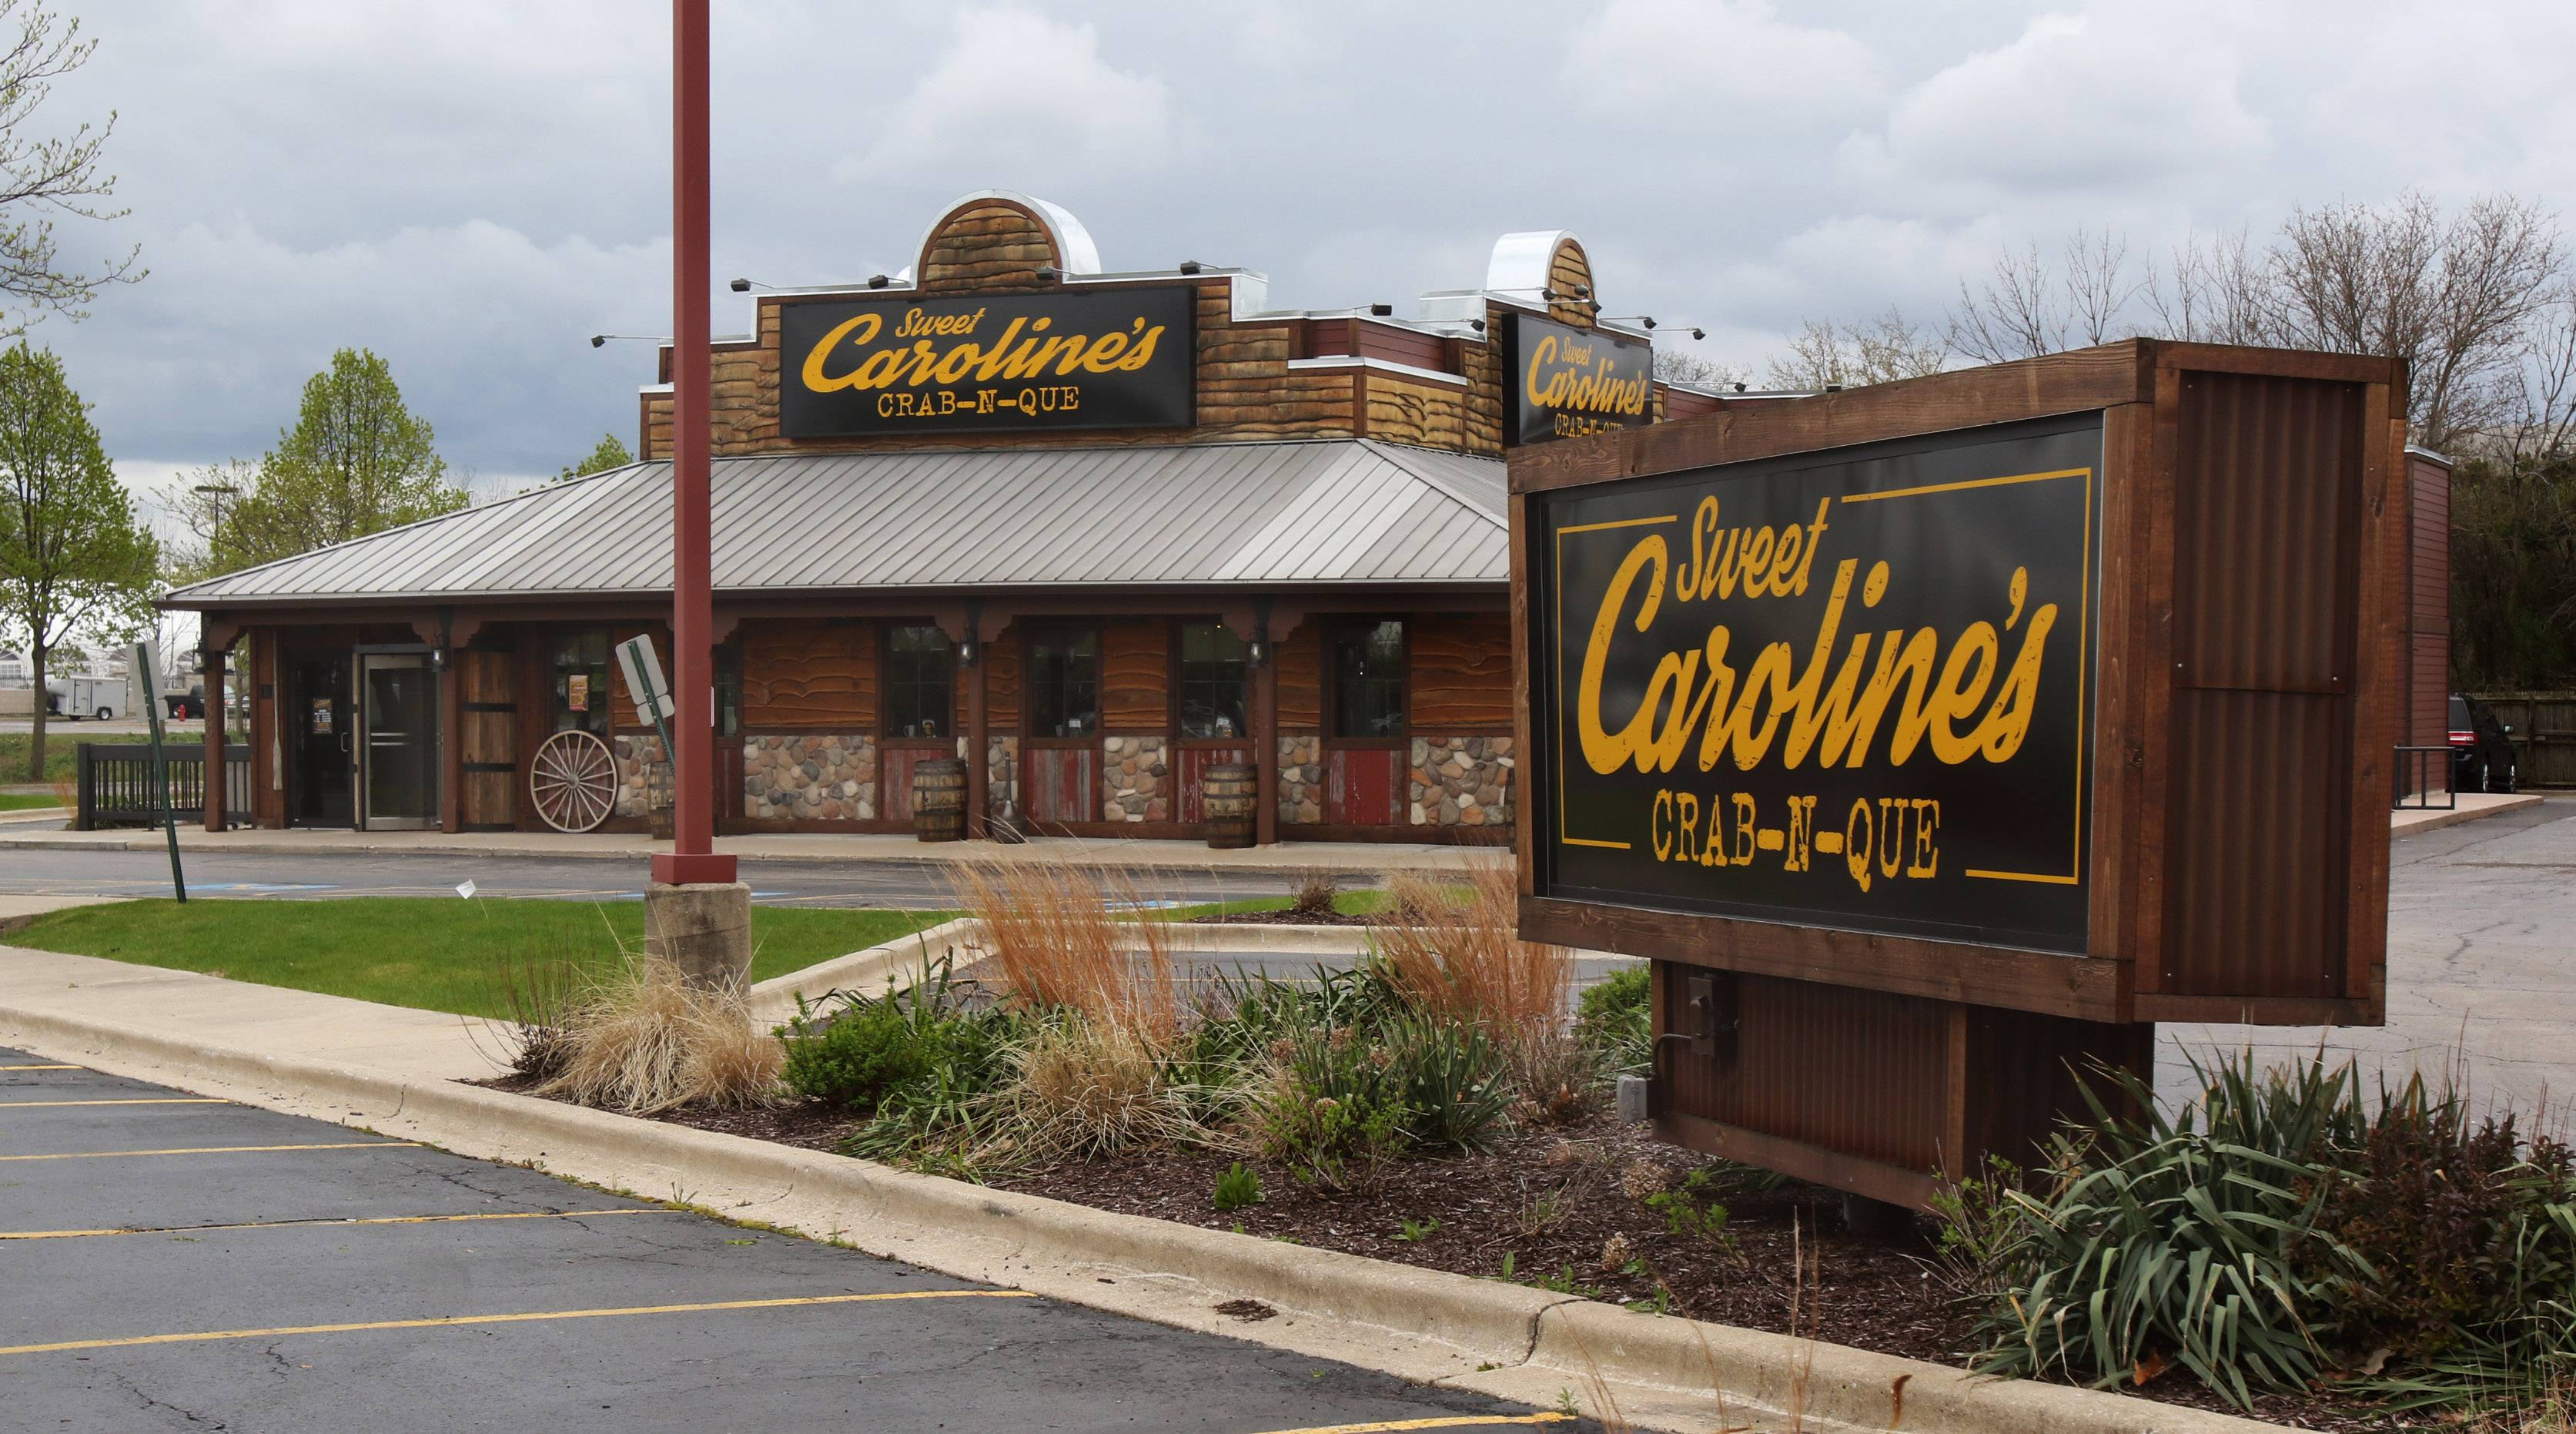 Ala Carte Entertainment's restaurants include Sweet Caroline's Crab-N-Que restaurant in Hoffman Estates, above, Drink nightclub in Schaumburg, below left, and Moretti's Ristorante and Pizzeria in Schaumburg and other suburbs.